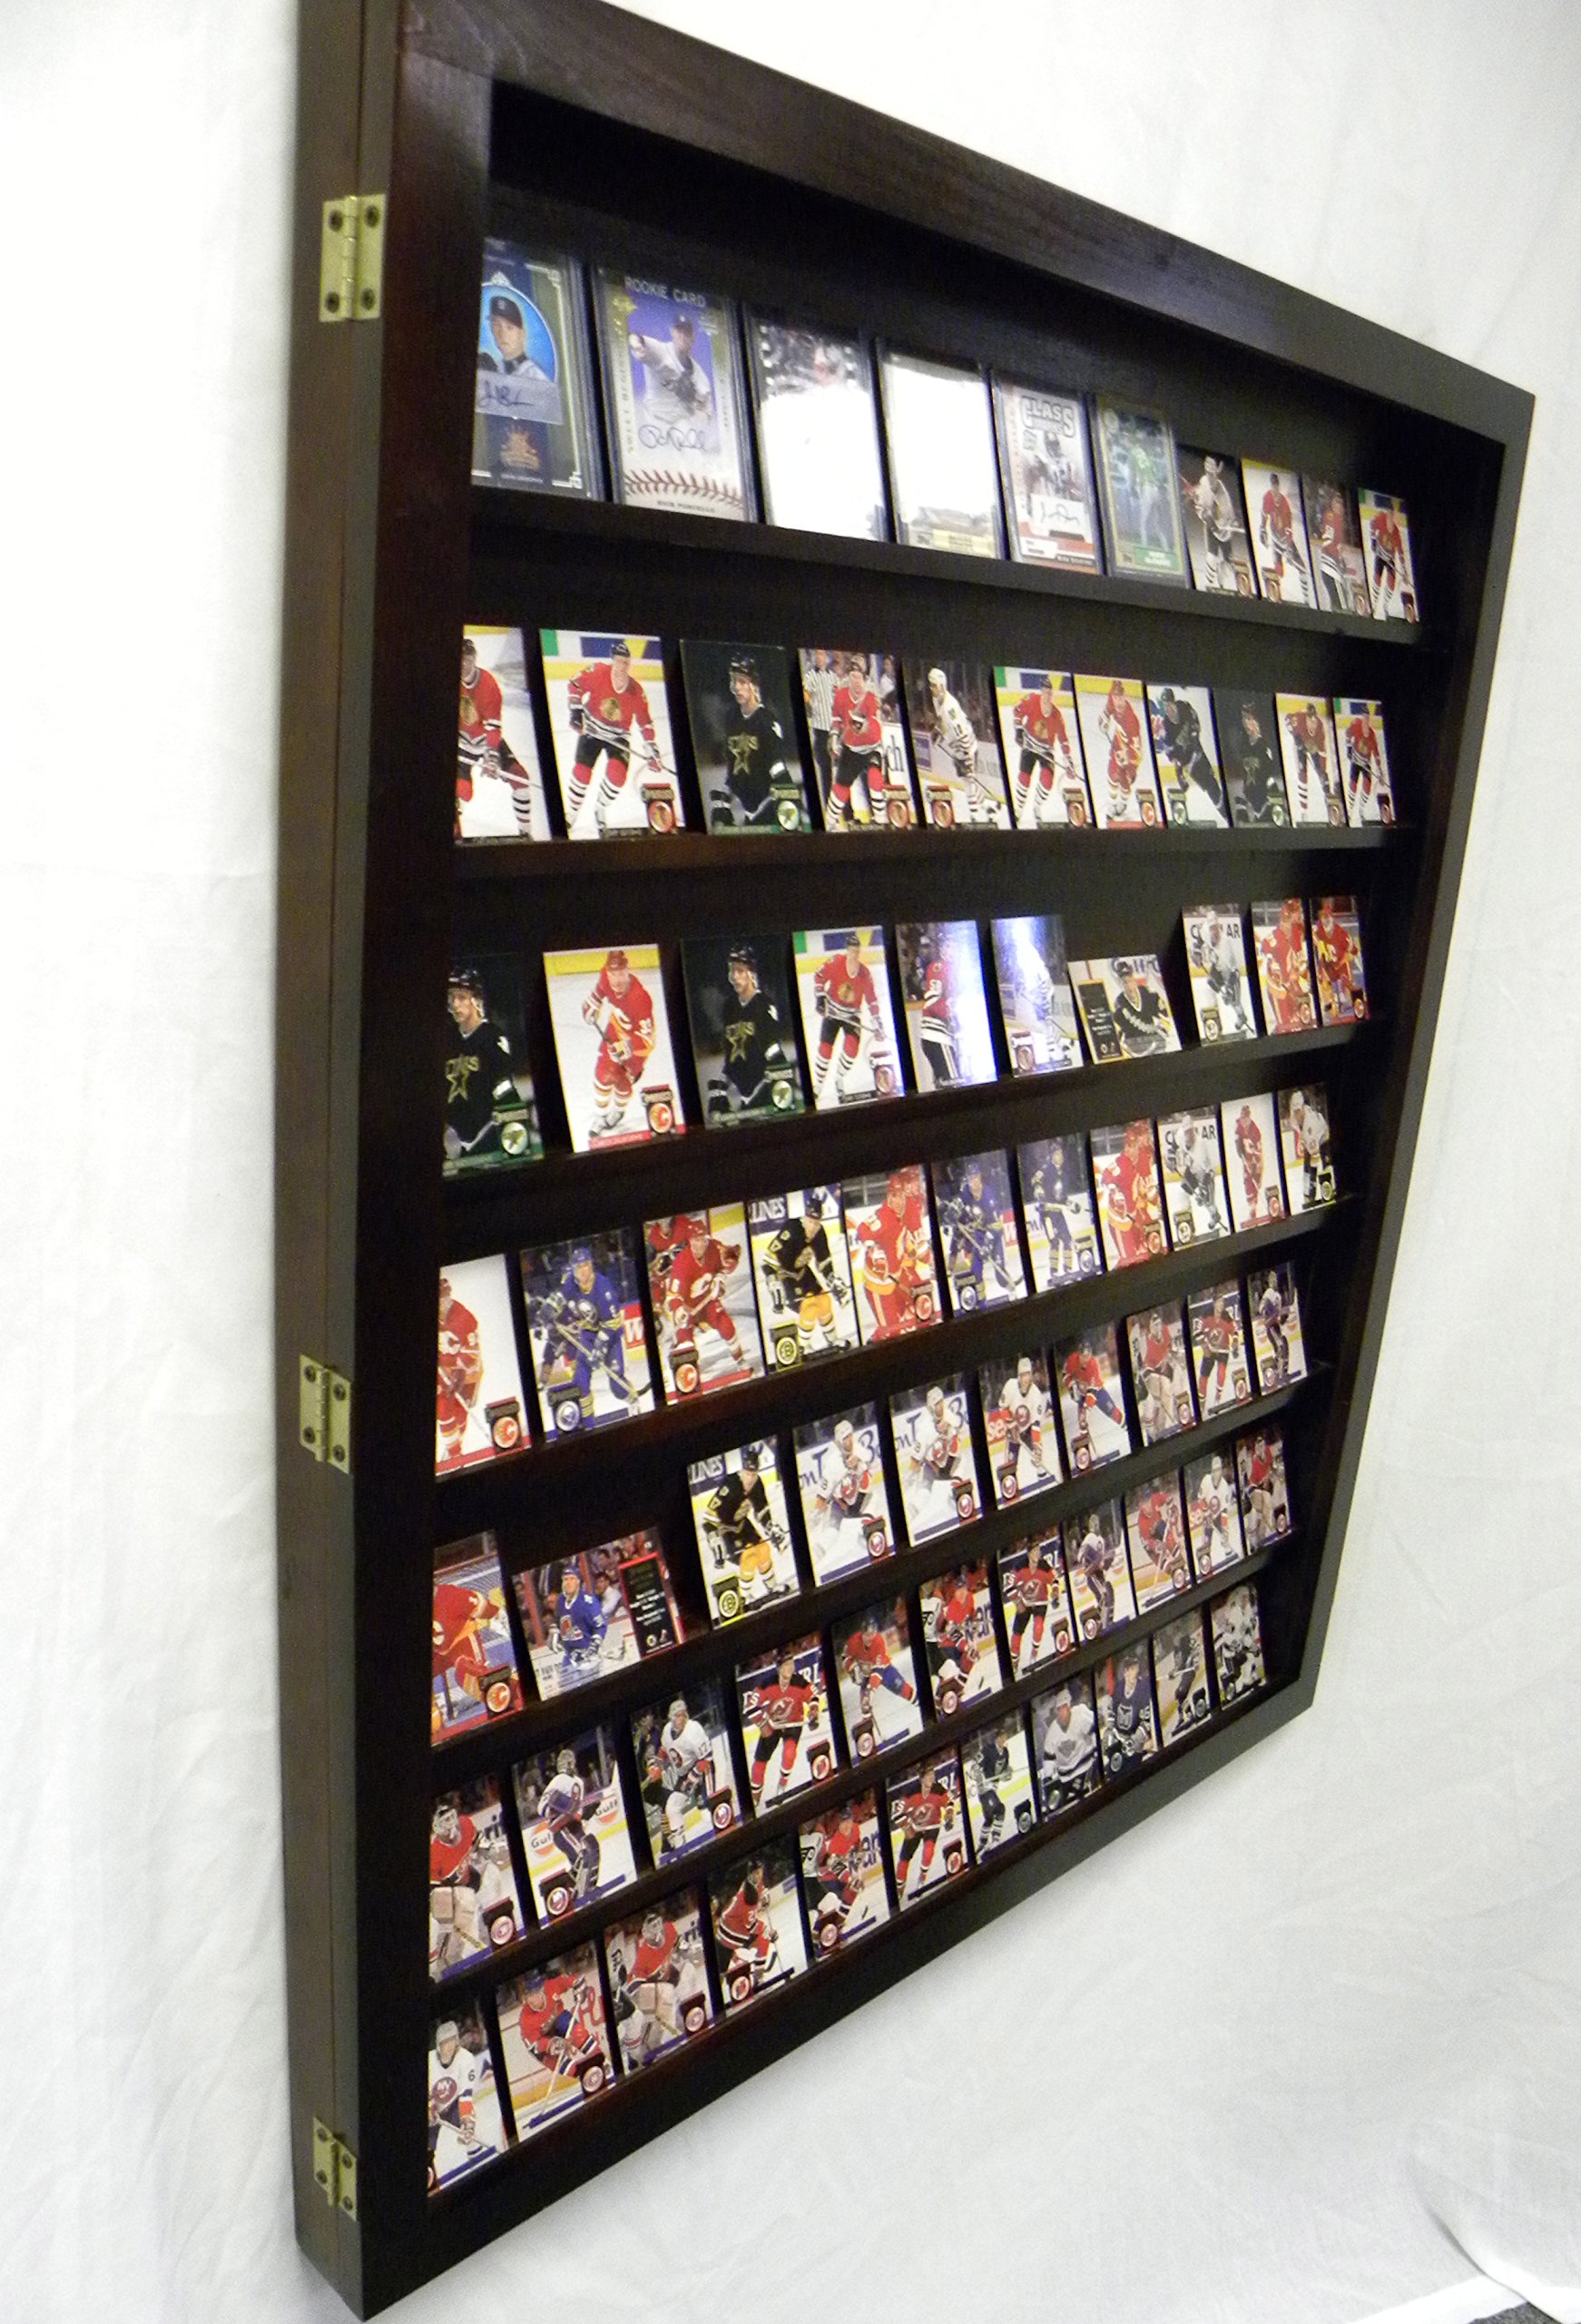 Card Deck Display Case for Decks of Cards/Playing Card Deck Display Case (Cherry) by Pennzoni Display (Image #5)